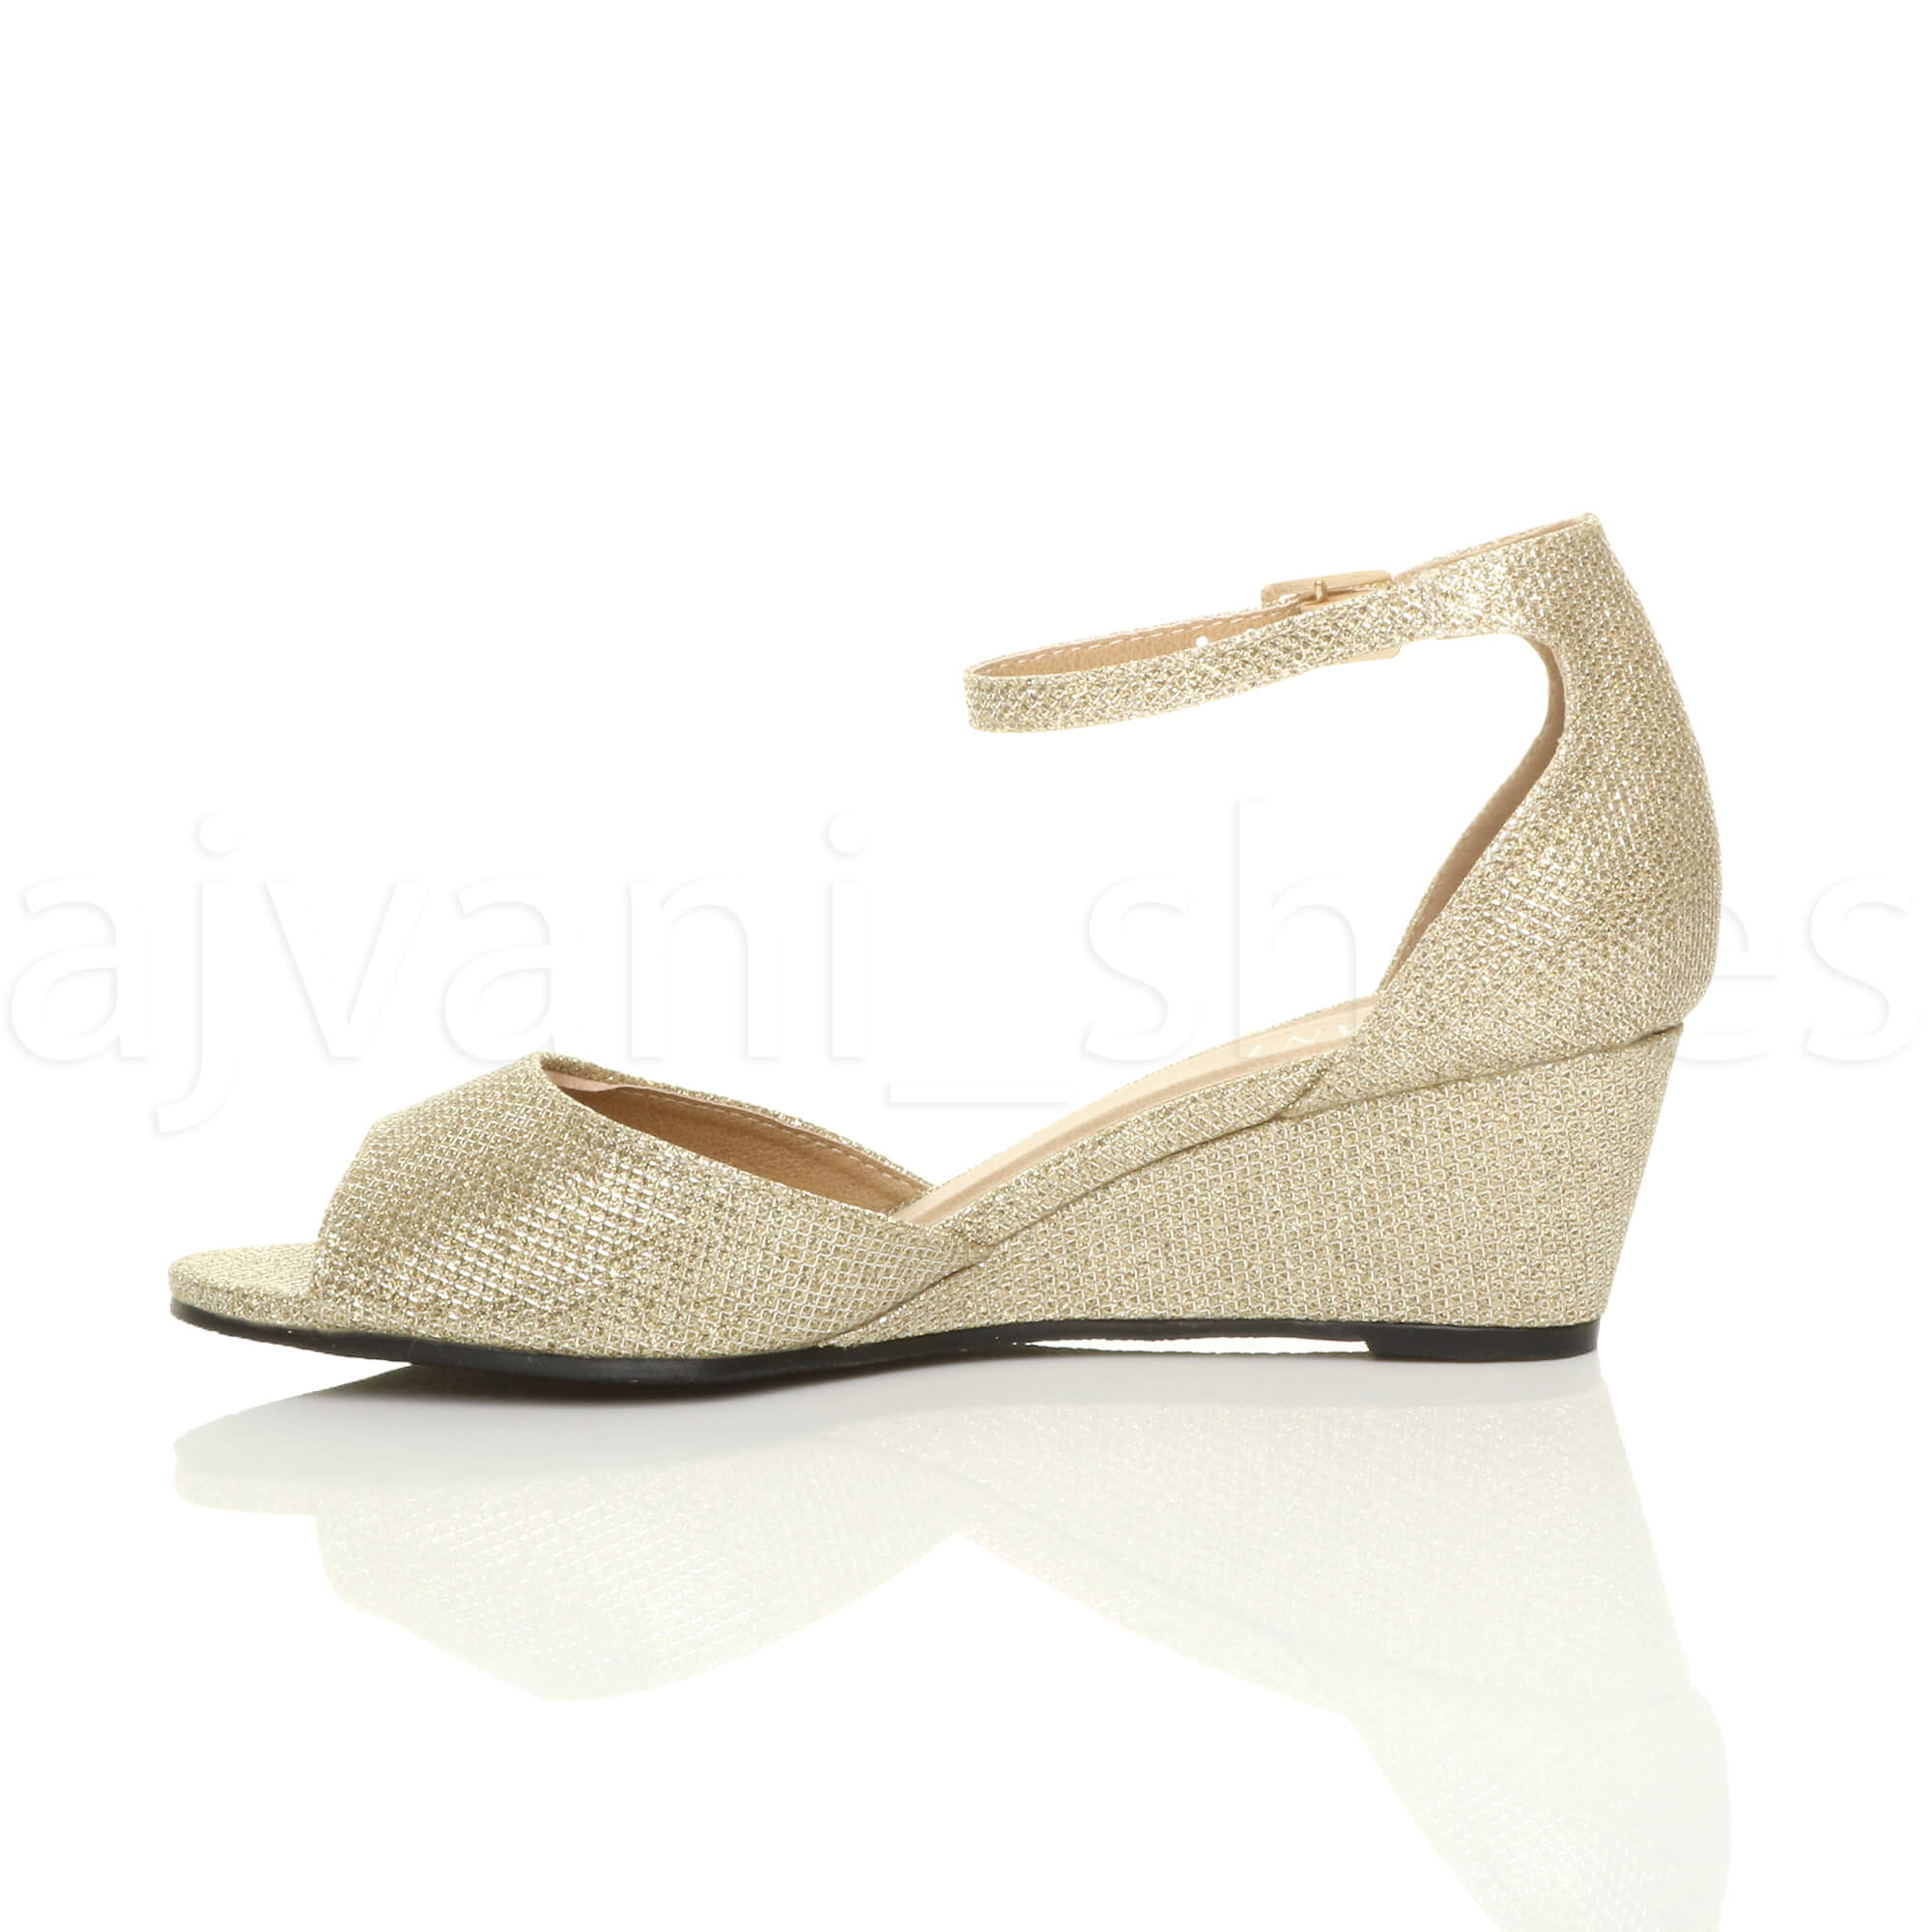 WOMENS-LADIES-LOW-MID-WEDGE-HEEL-ANKLE-STRAP-SMART-CASUAL-EVENING-SANDALS-SIZE thumbnail 52